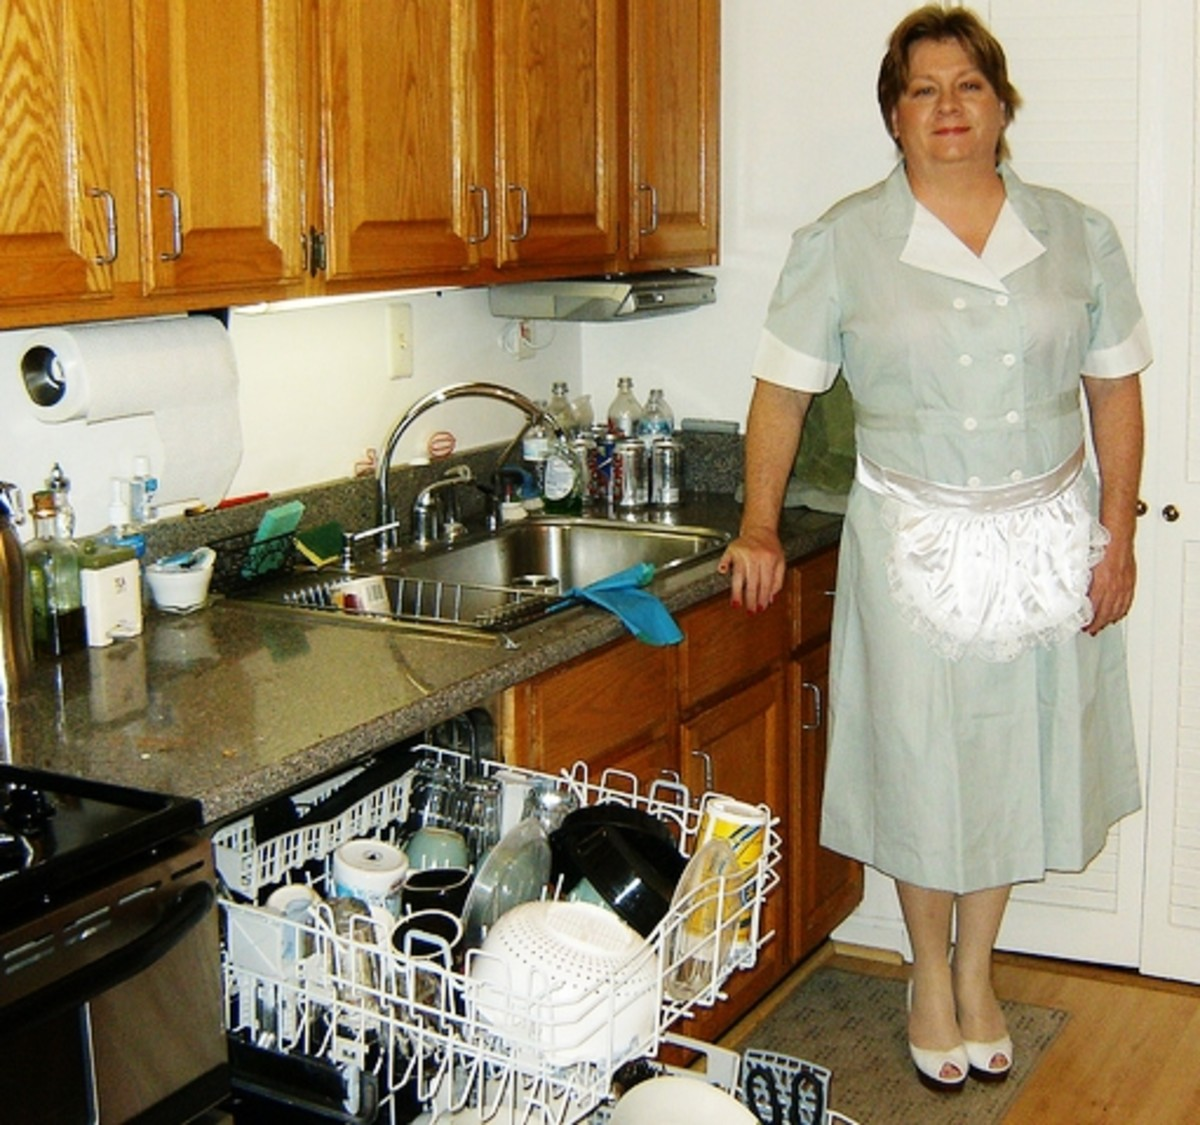 Does working as a maid create a positive or negative situation for women?